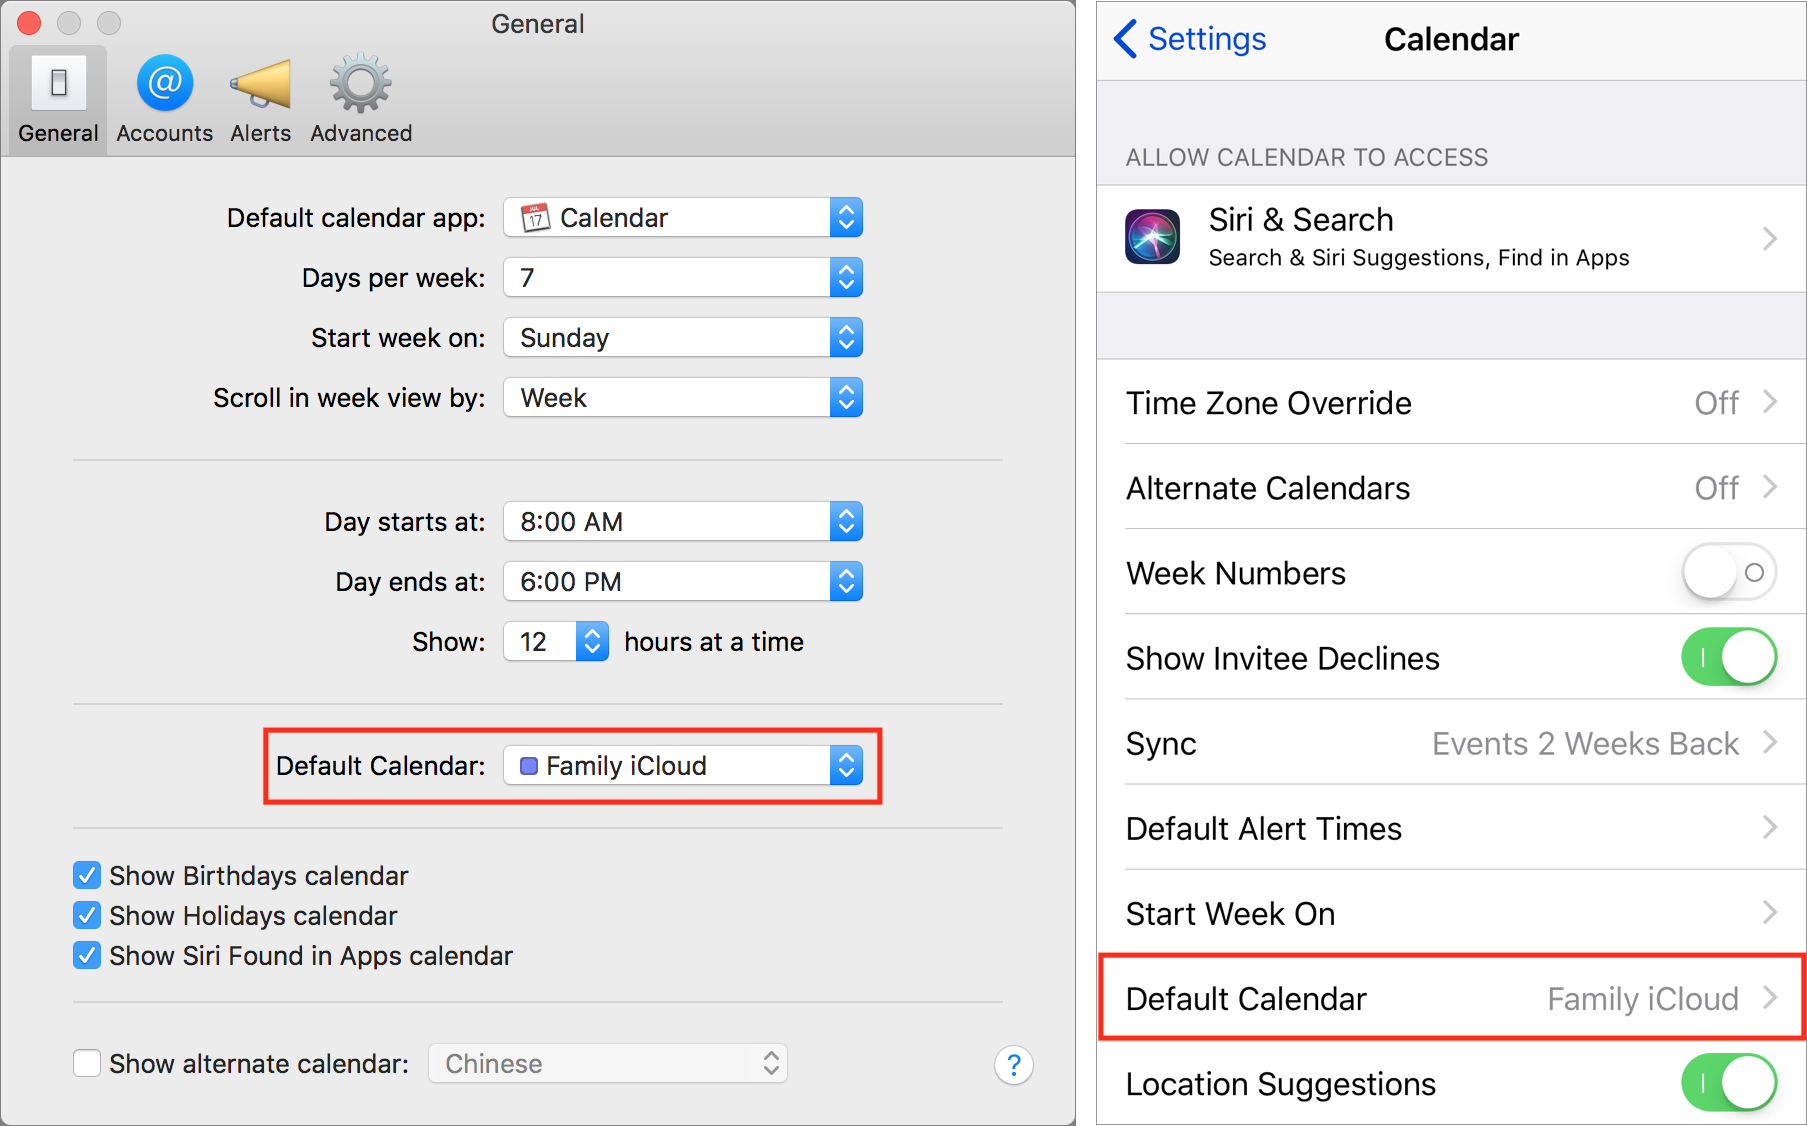 Set default calendars